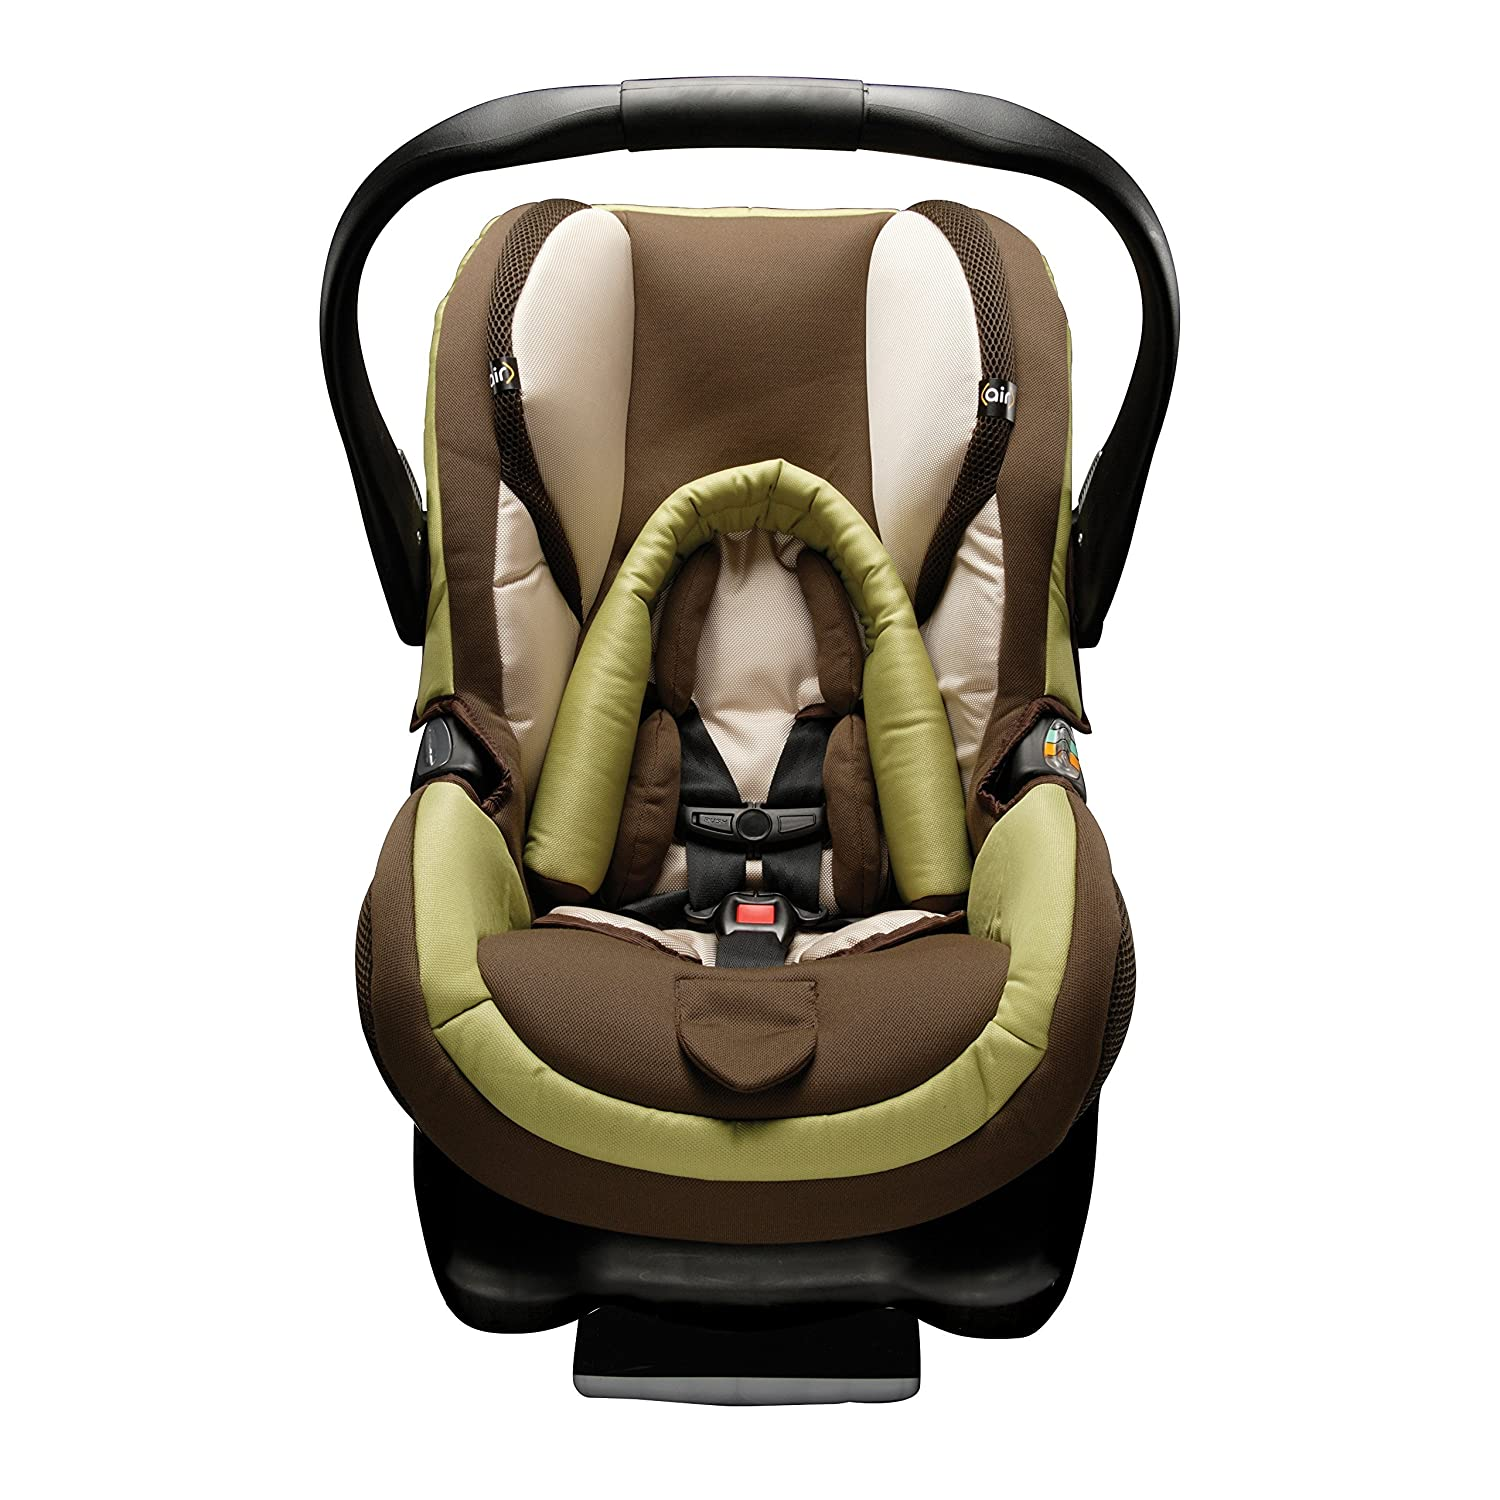 Amazon.com : Safety 1st Air Protect On Board 35 Infant Car Seat, Rio ...